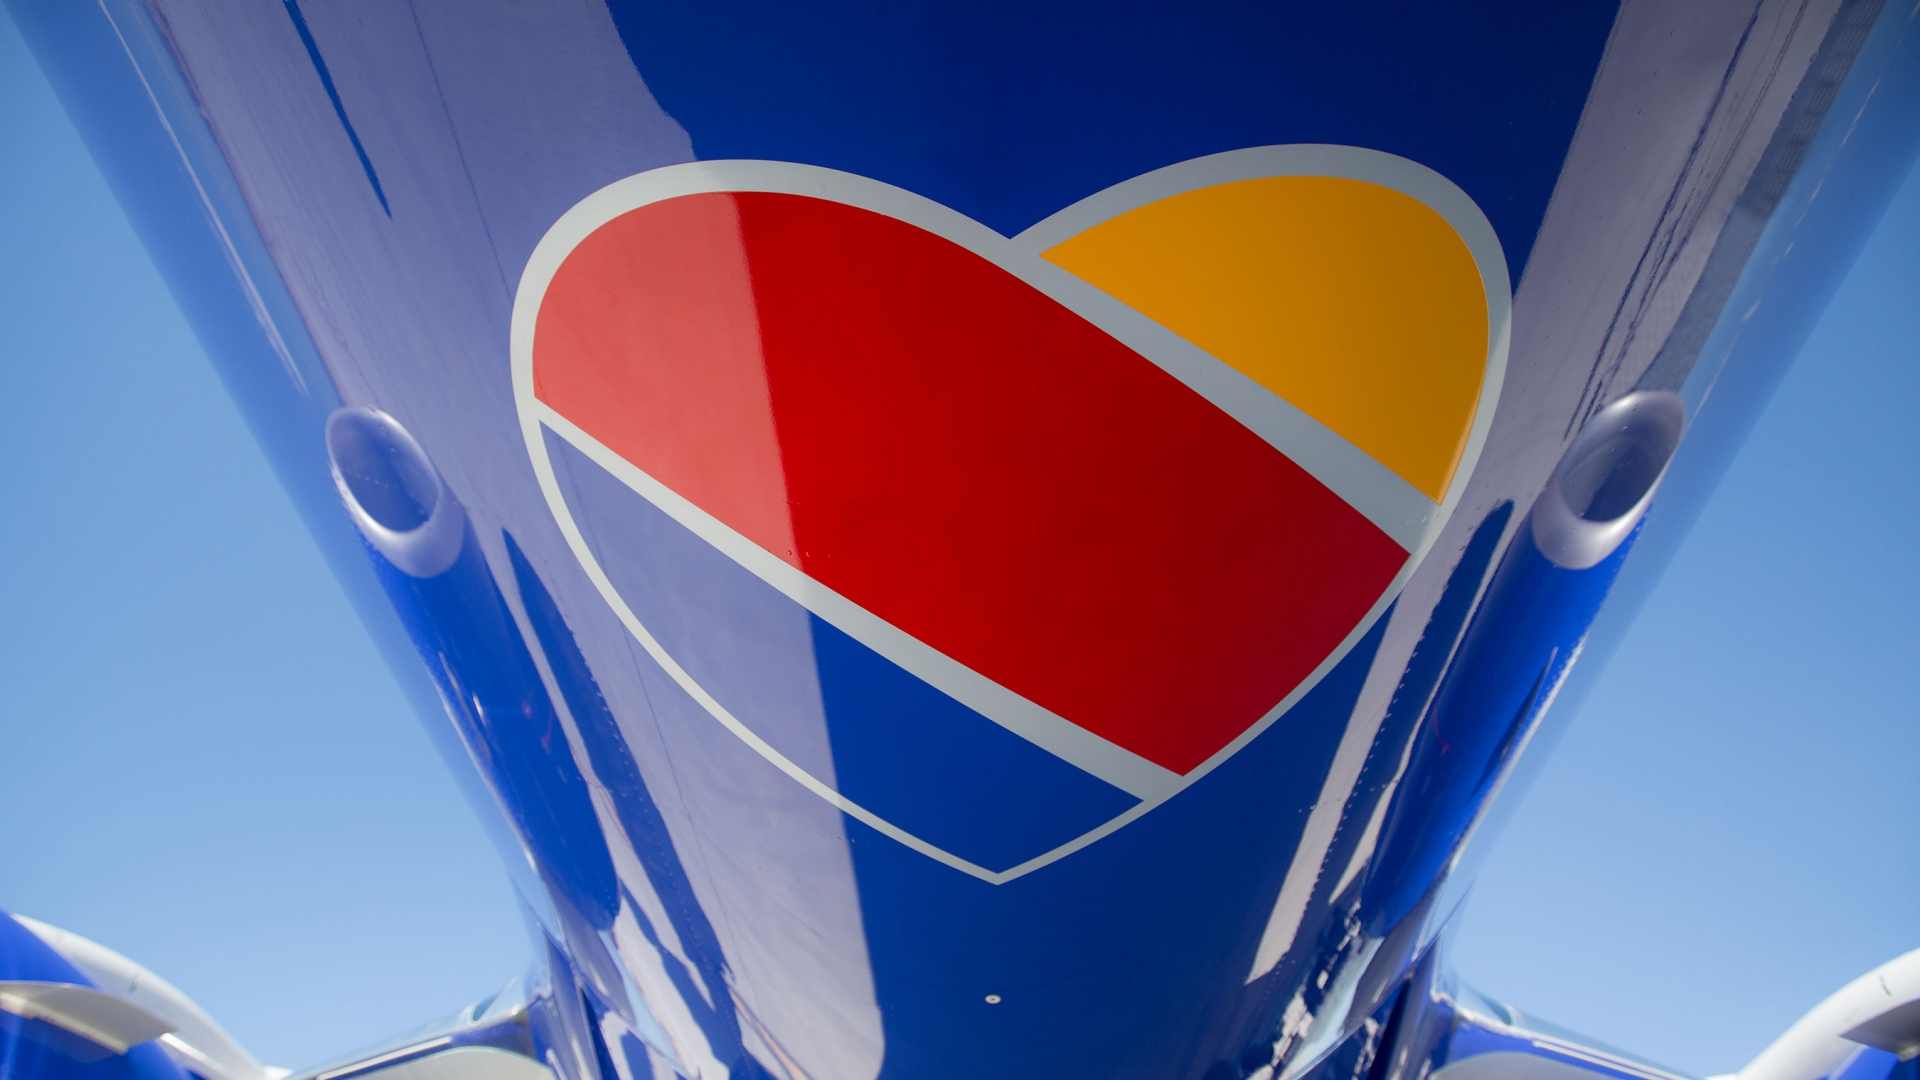 Southwest Wallpaper